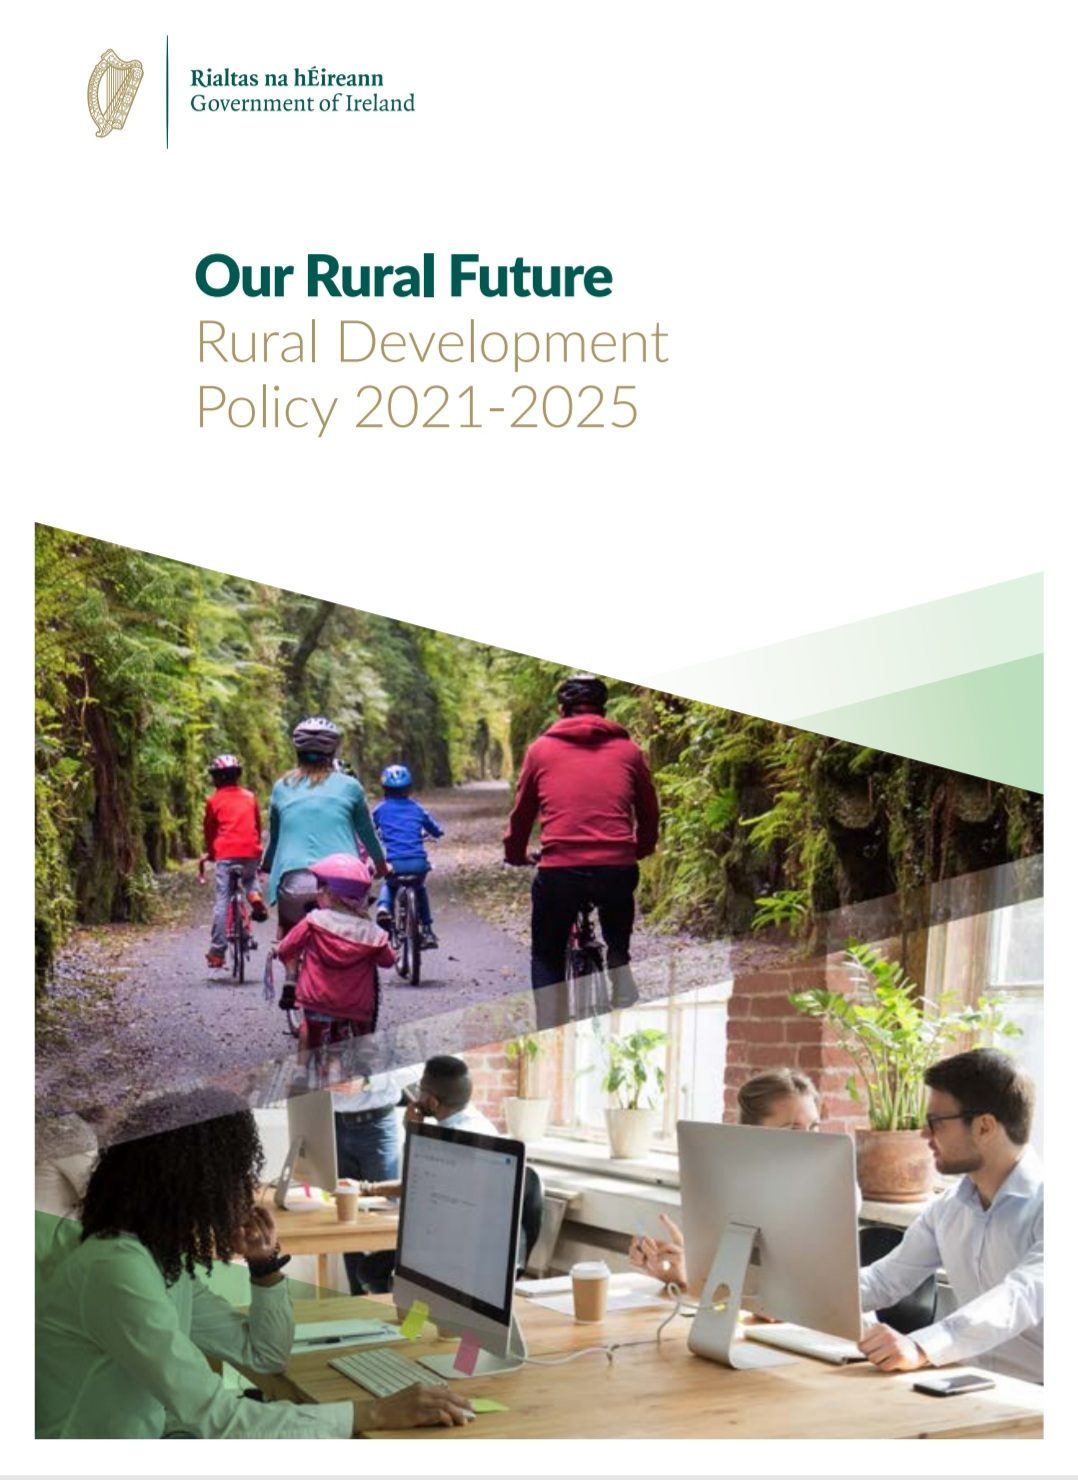 New Rural Development Plan will support the recovery of our tourism and hospitality sector and help create jobs in Cork – Cllr. John Paul O'Shea